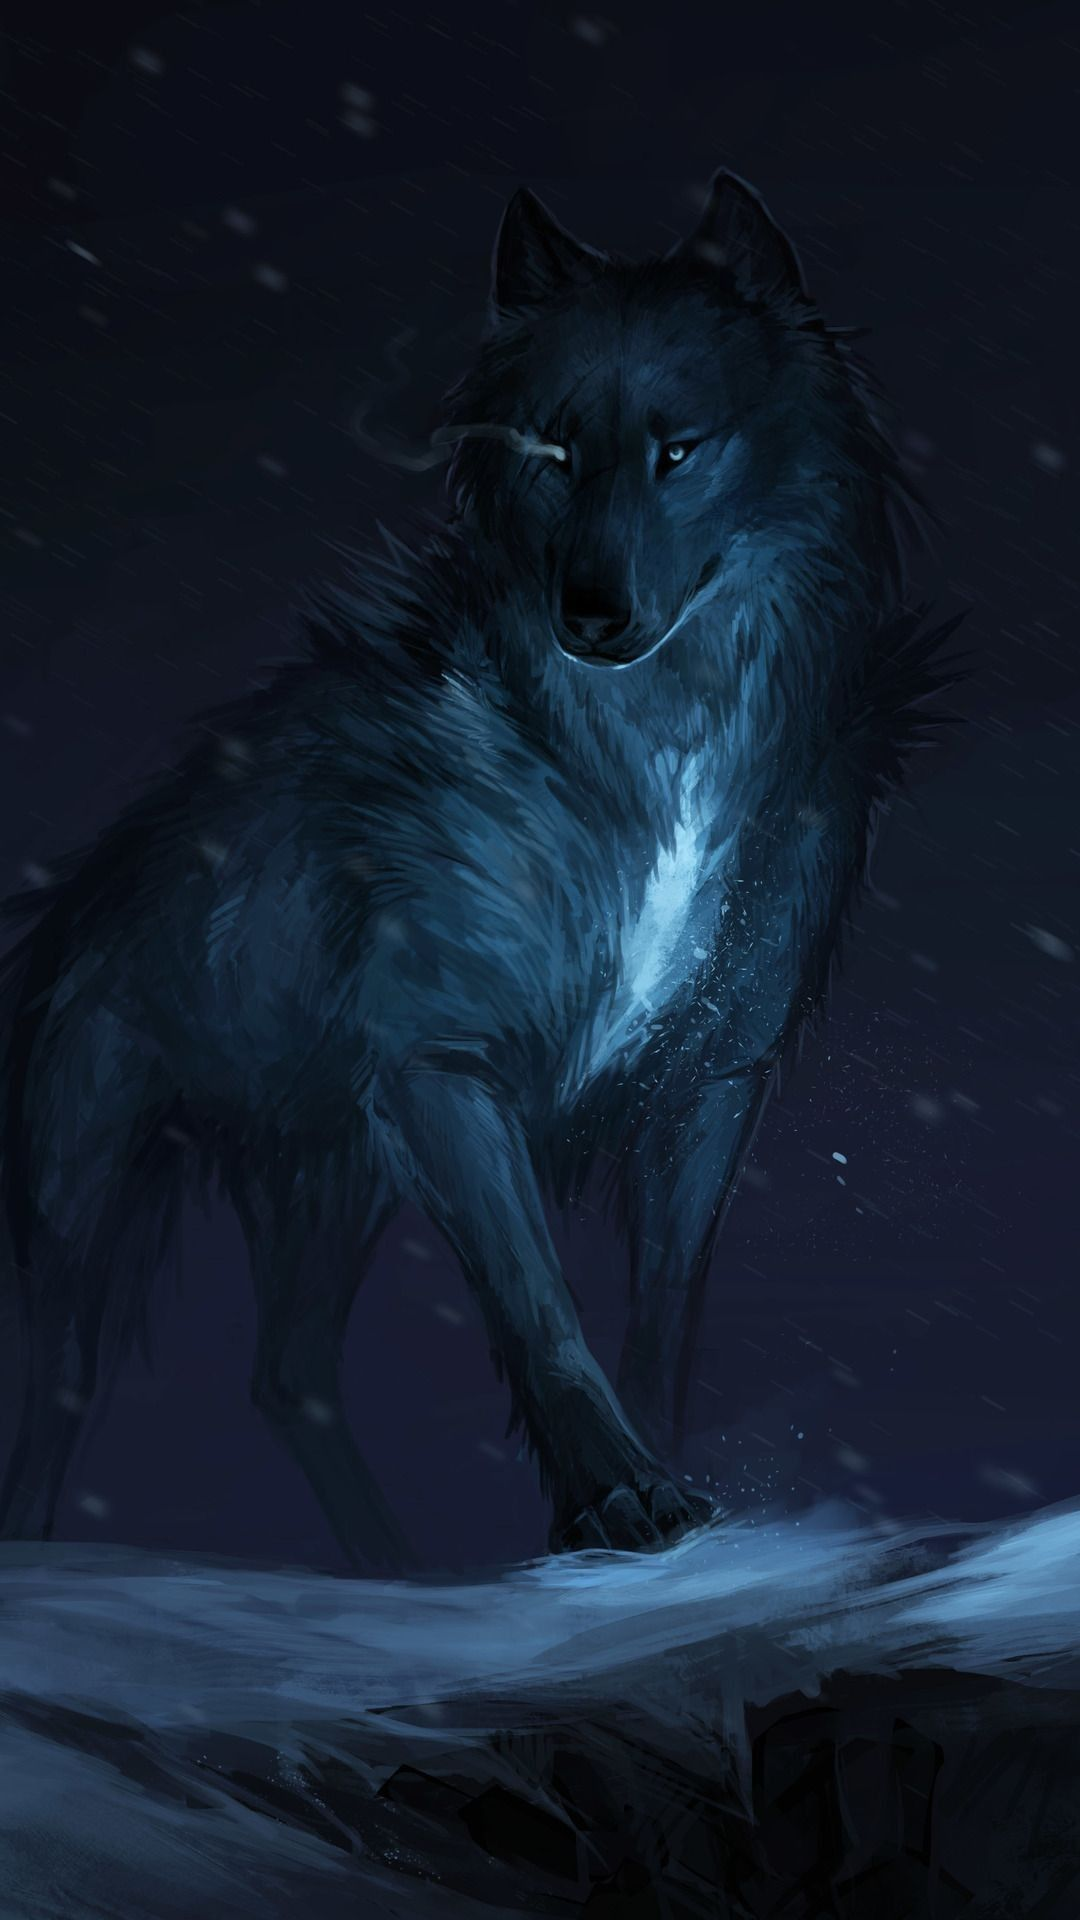 Best Of Dire Wolf iPhone Wallpaper in 2020 Wolf